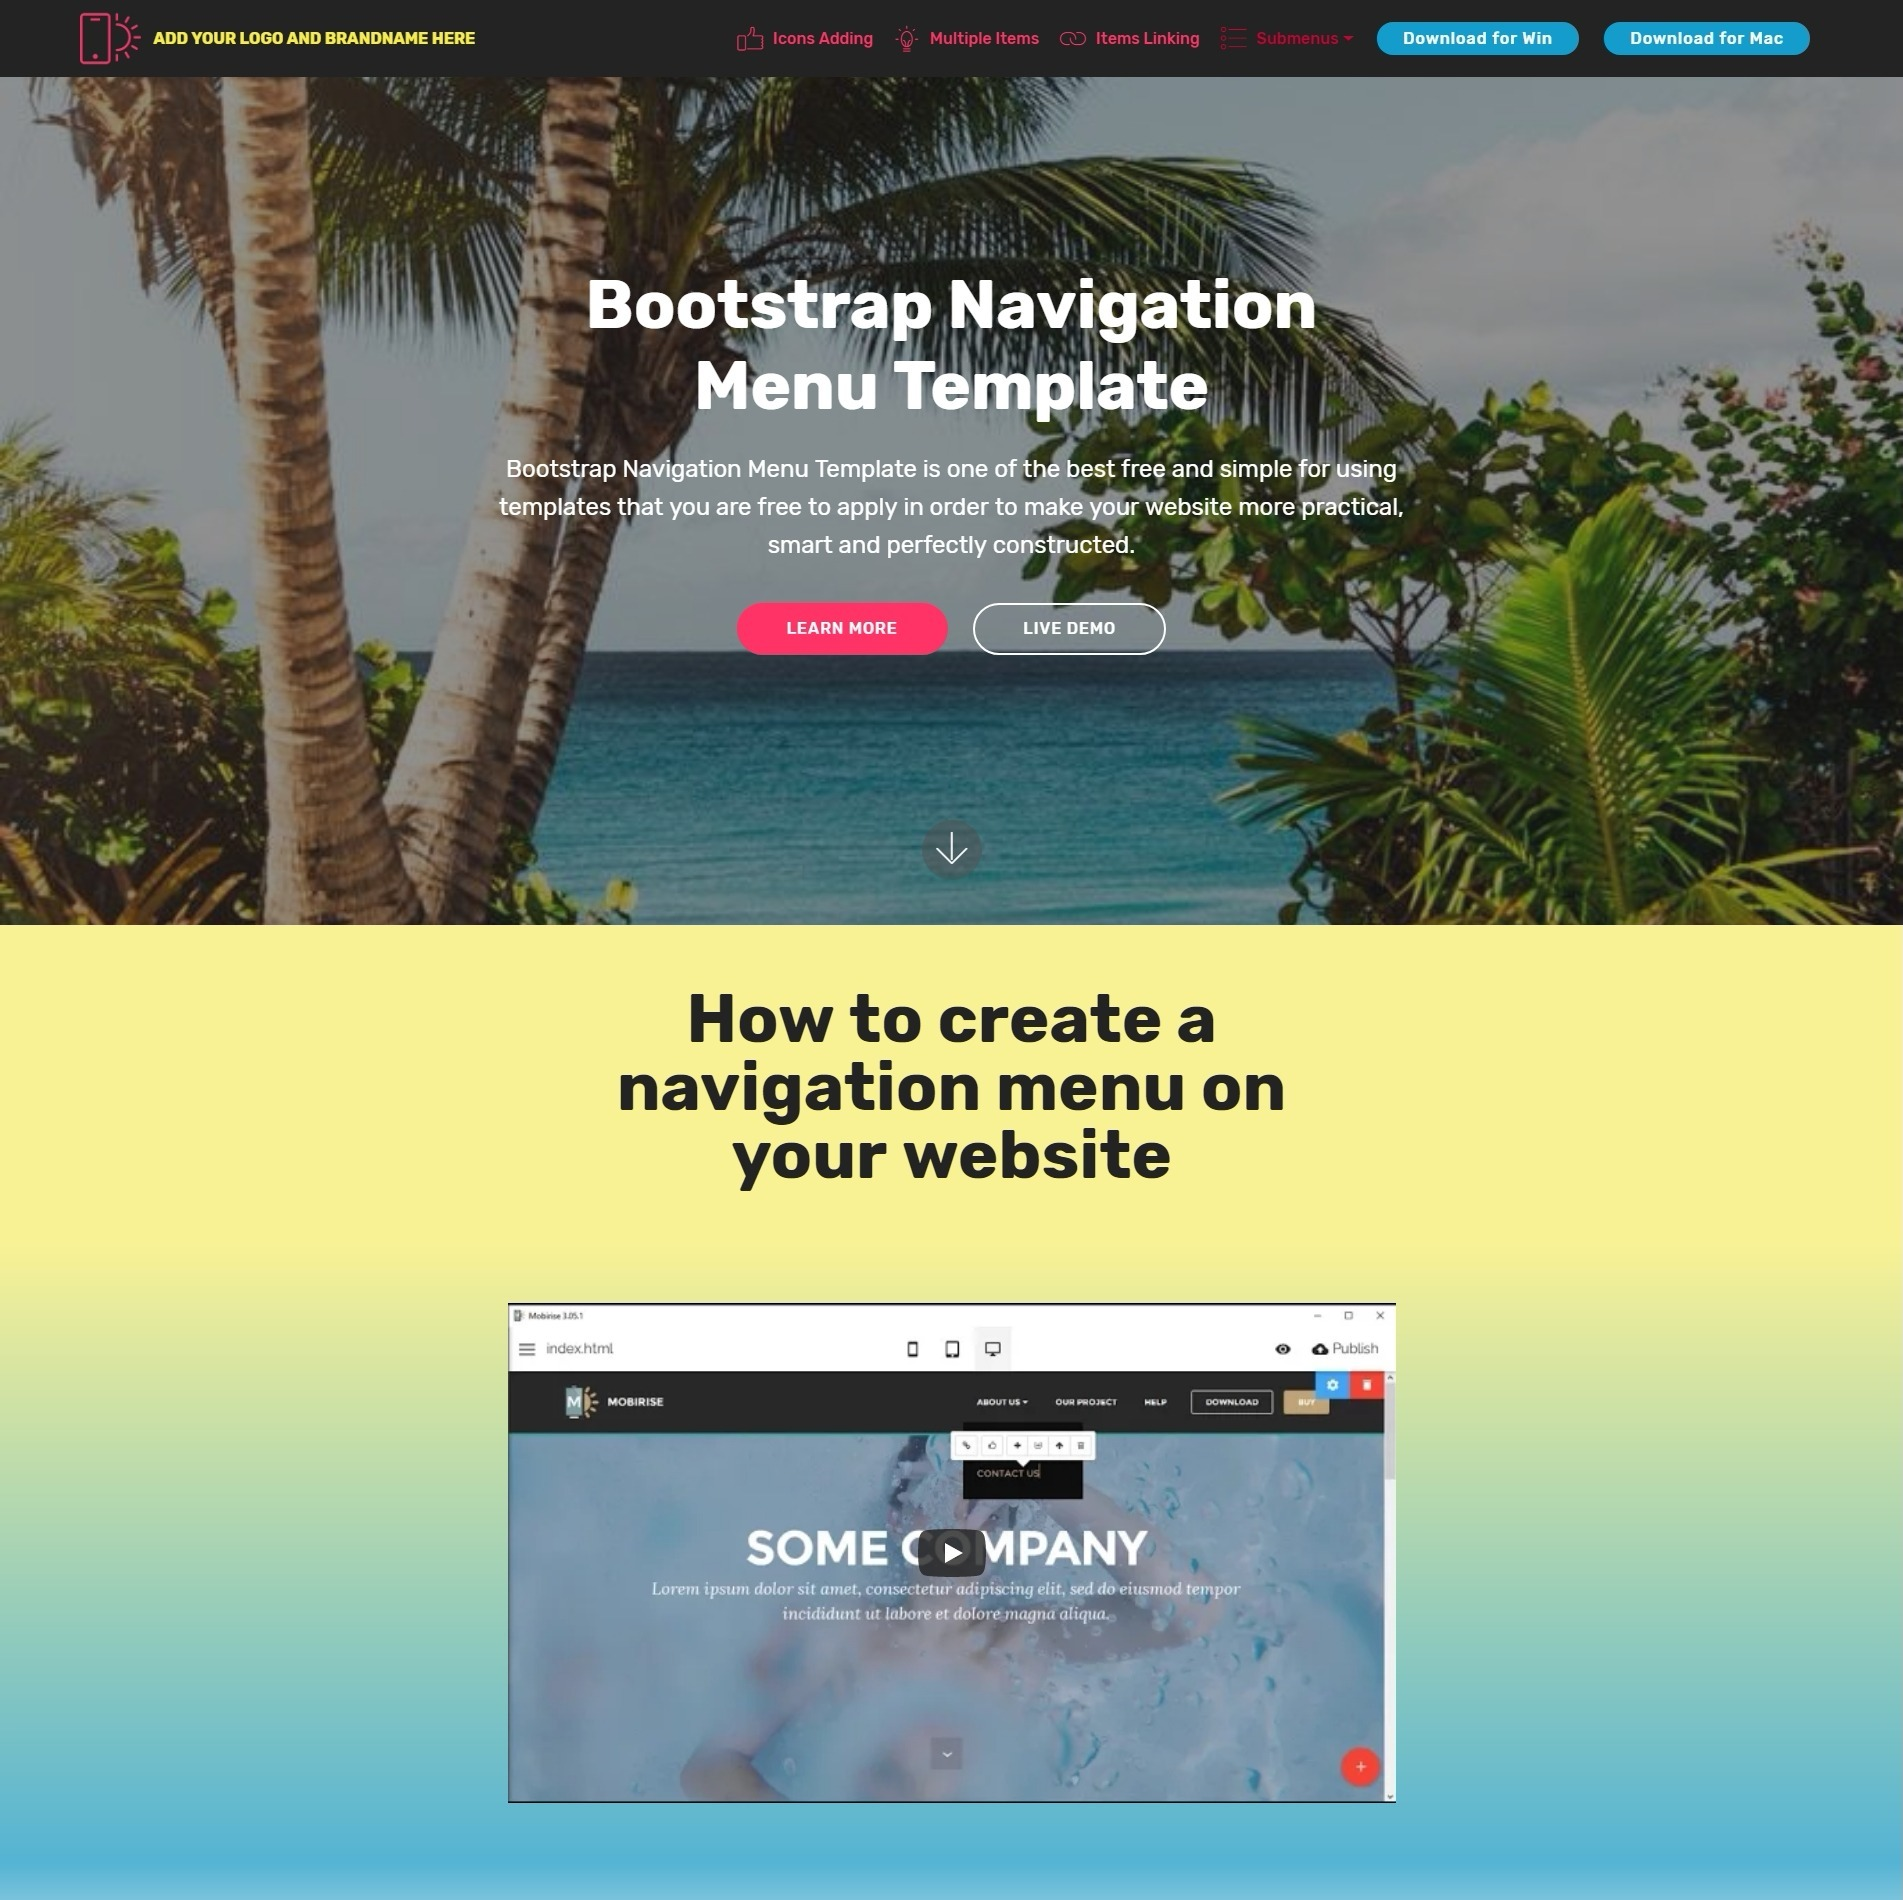 Bootstrap Navigation Menu Template